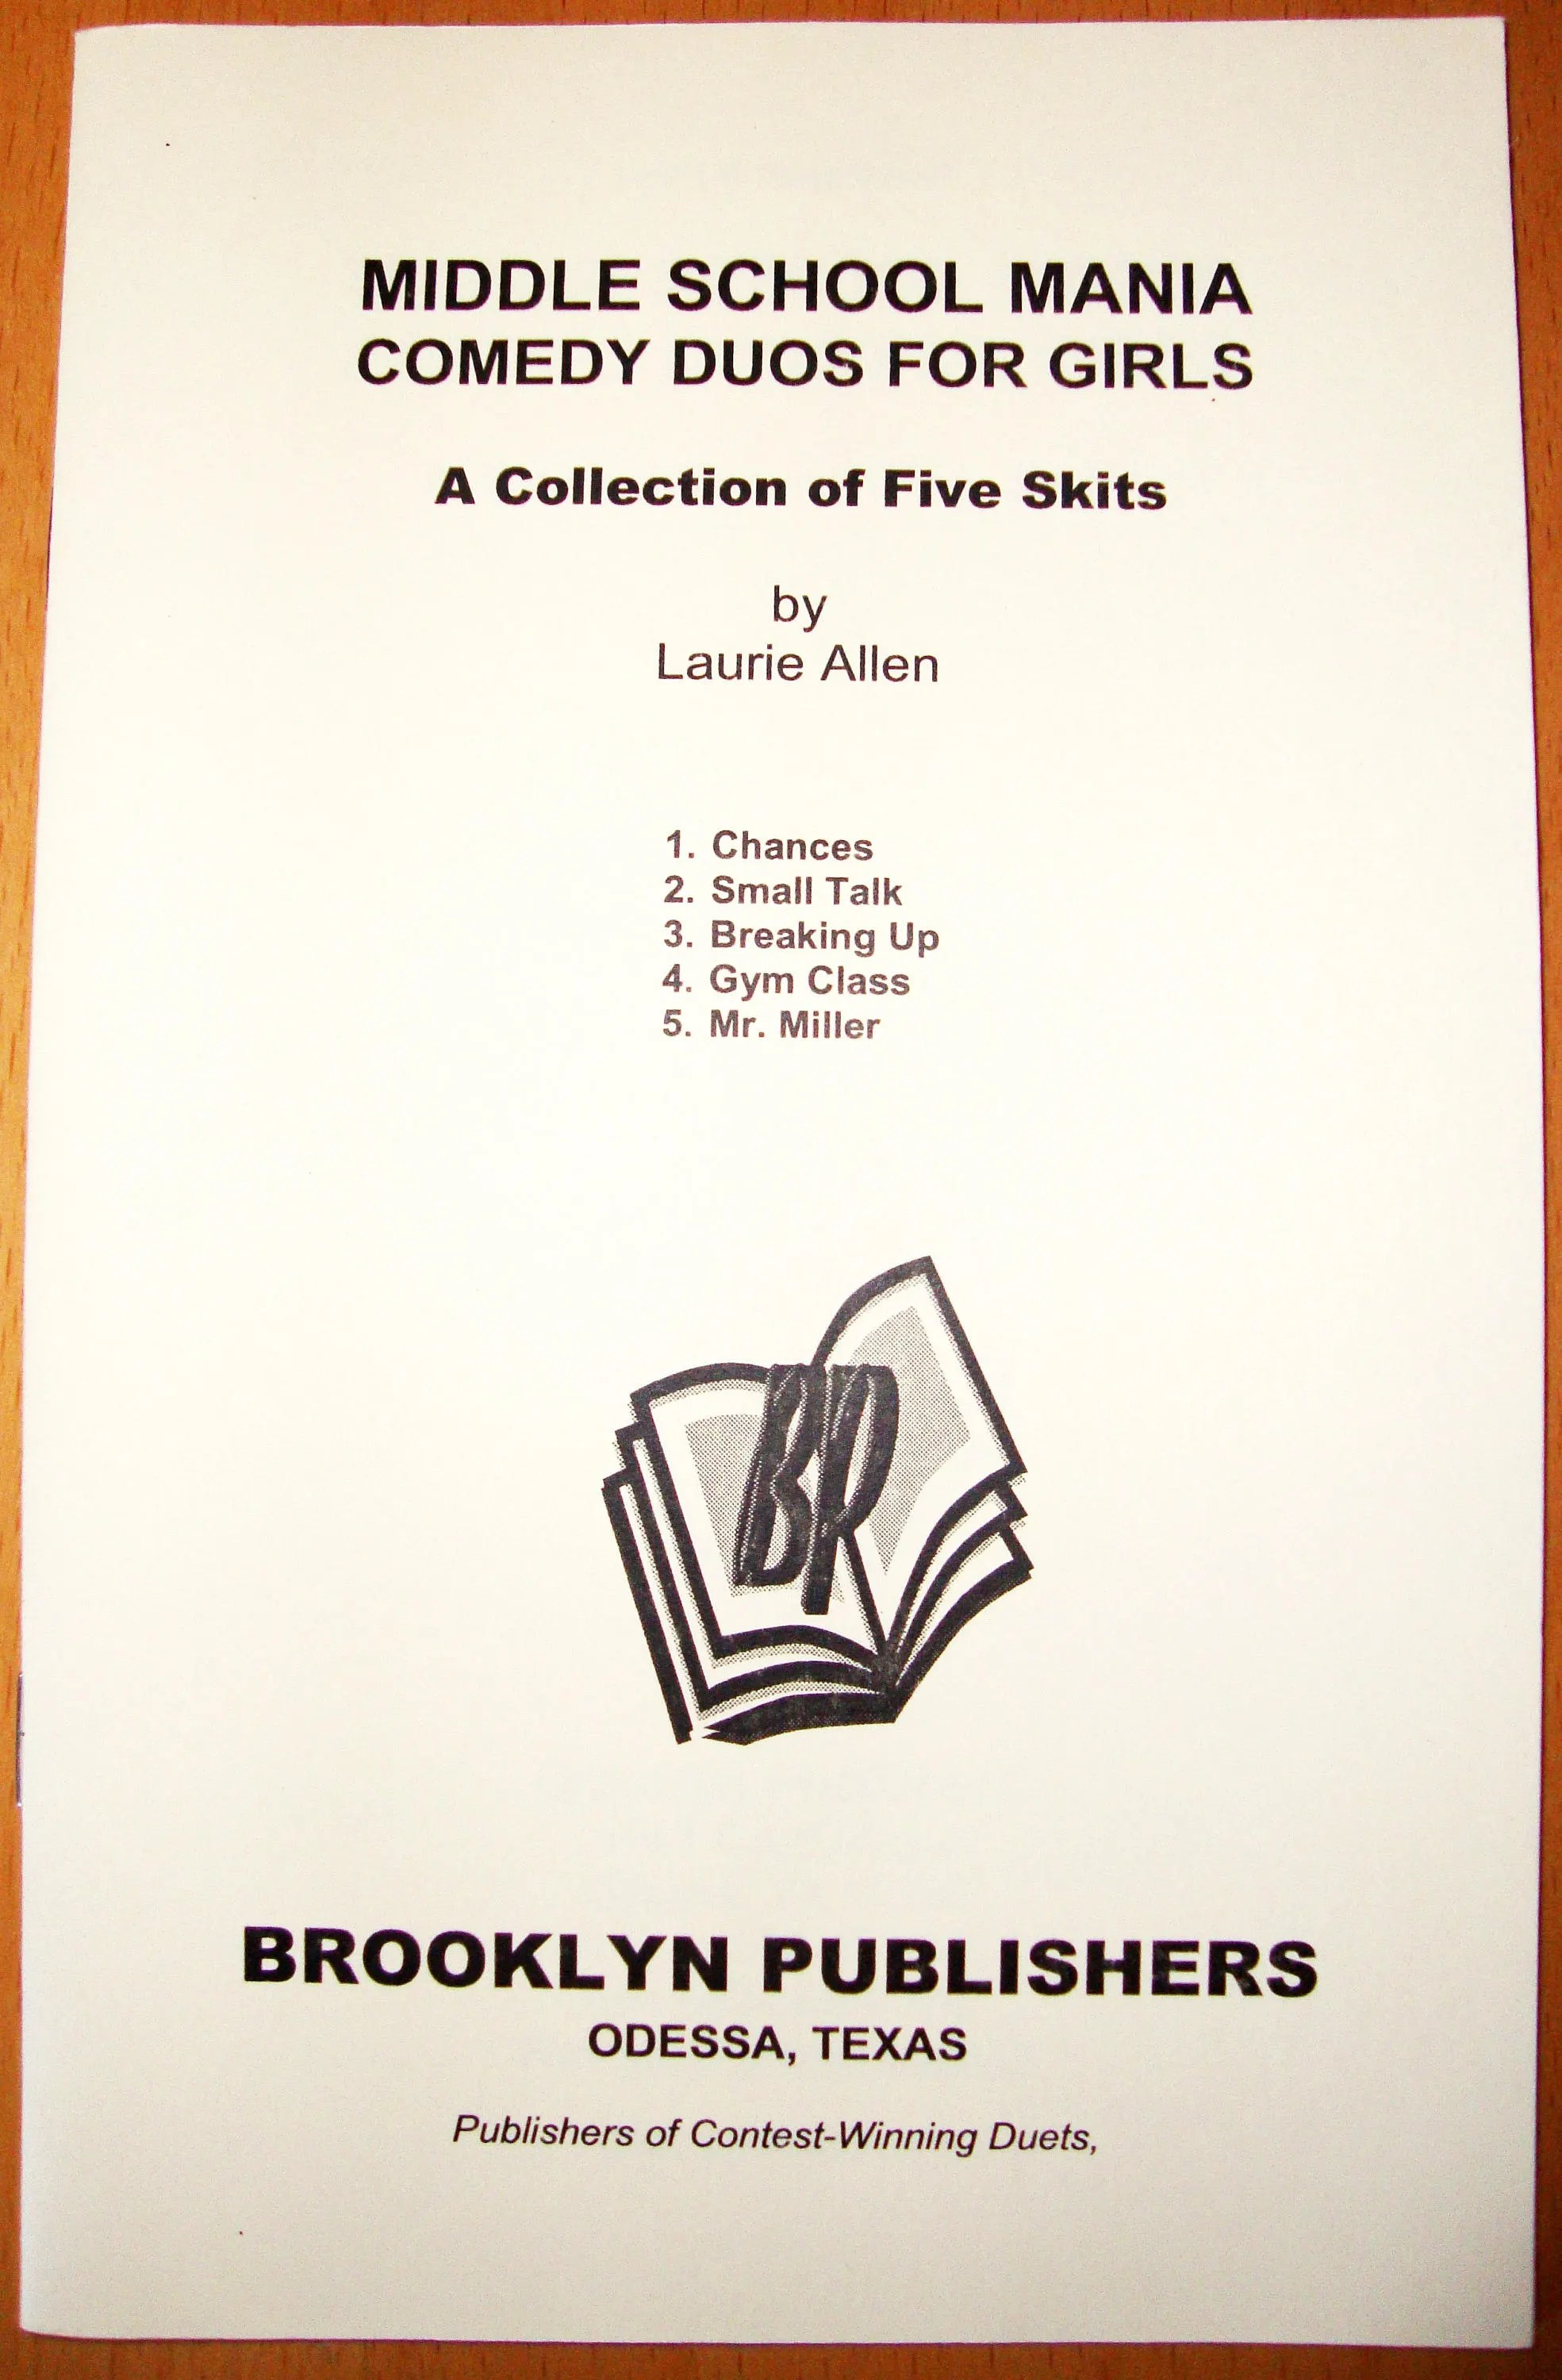 Funny Skits For Welcome Party : funny, skits, welcome, party, COMEDY, GIRLS, Laurie, Allen, Brooklyn, Publishers